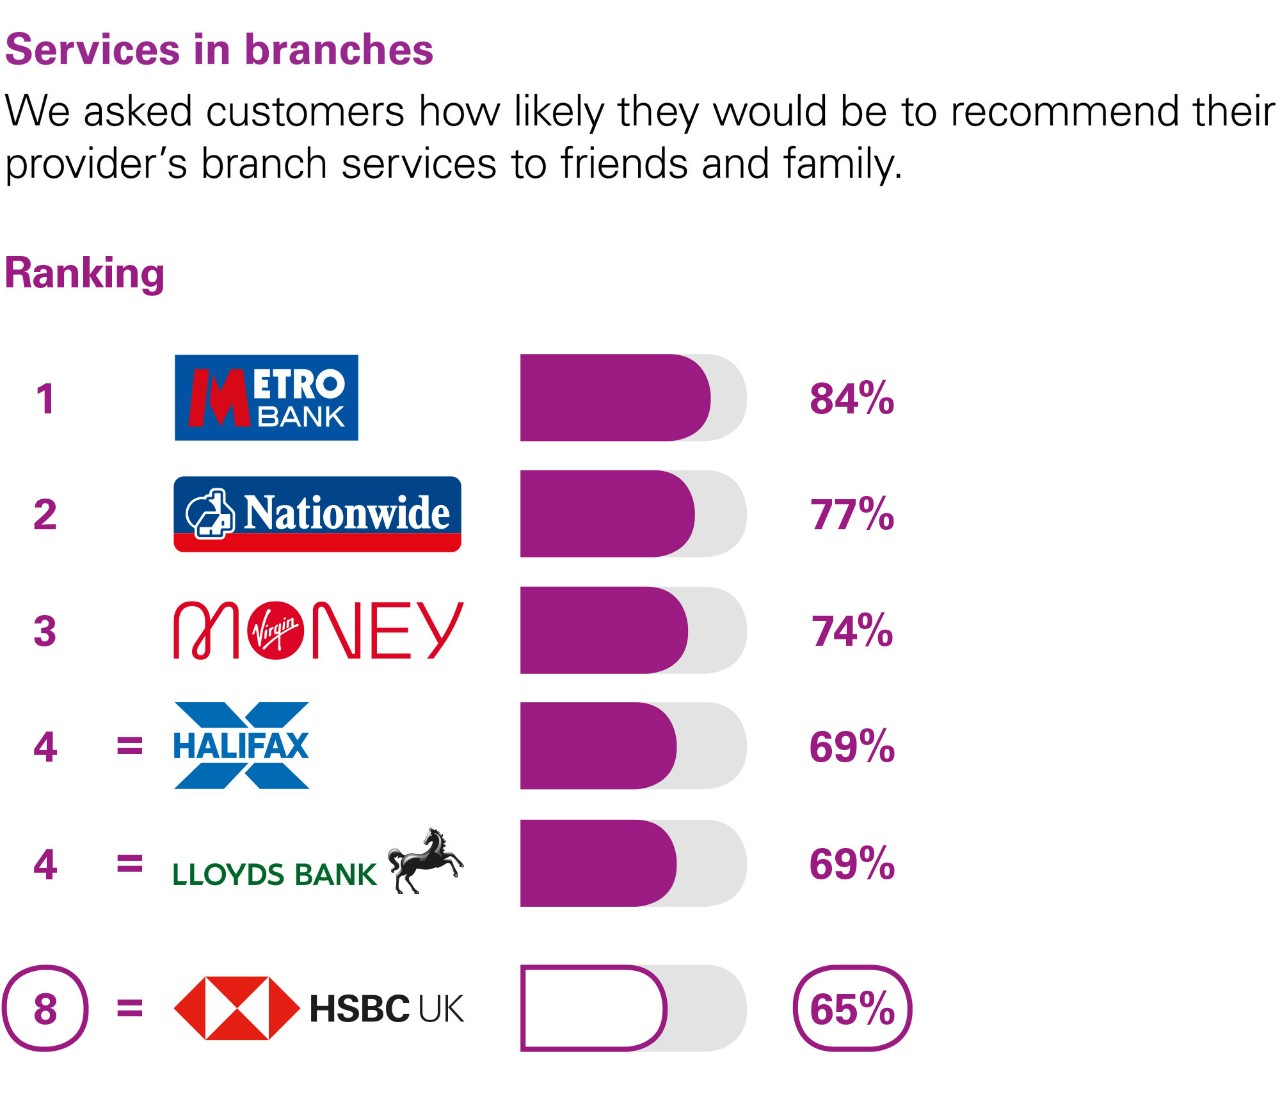 Services in branches. We asked customers how likely they would be to recommend their provider's branch services to friends and family. Ranking: 1 Metro Bank 84%. 2 Nationwide 77%. 3 Virgin money 74%. 4 equal Halifax and Lloyds Bank  69%. 8 HSBC UK 65%.